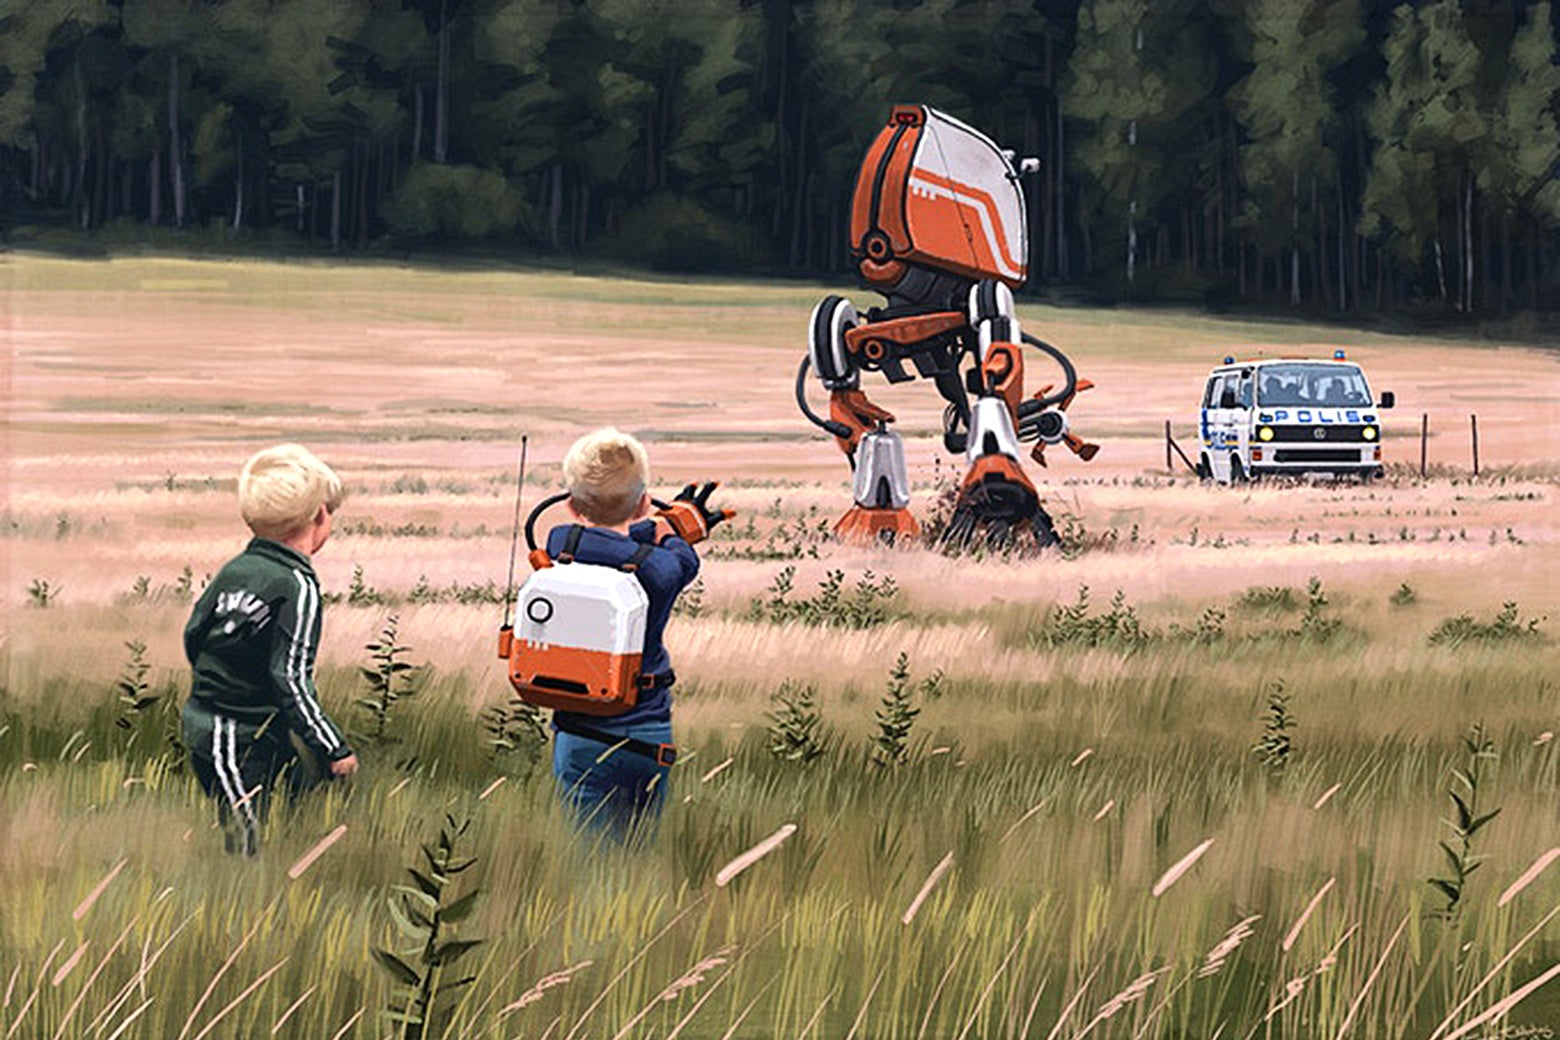 Two children encountering a robot in a field.